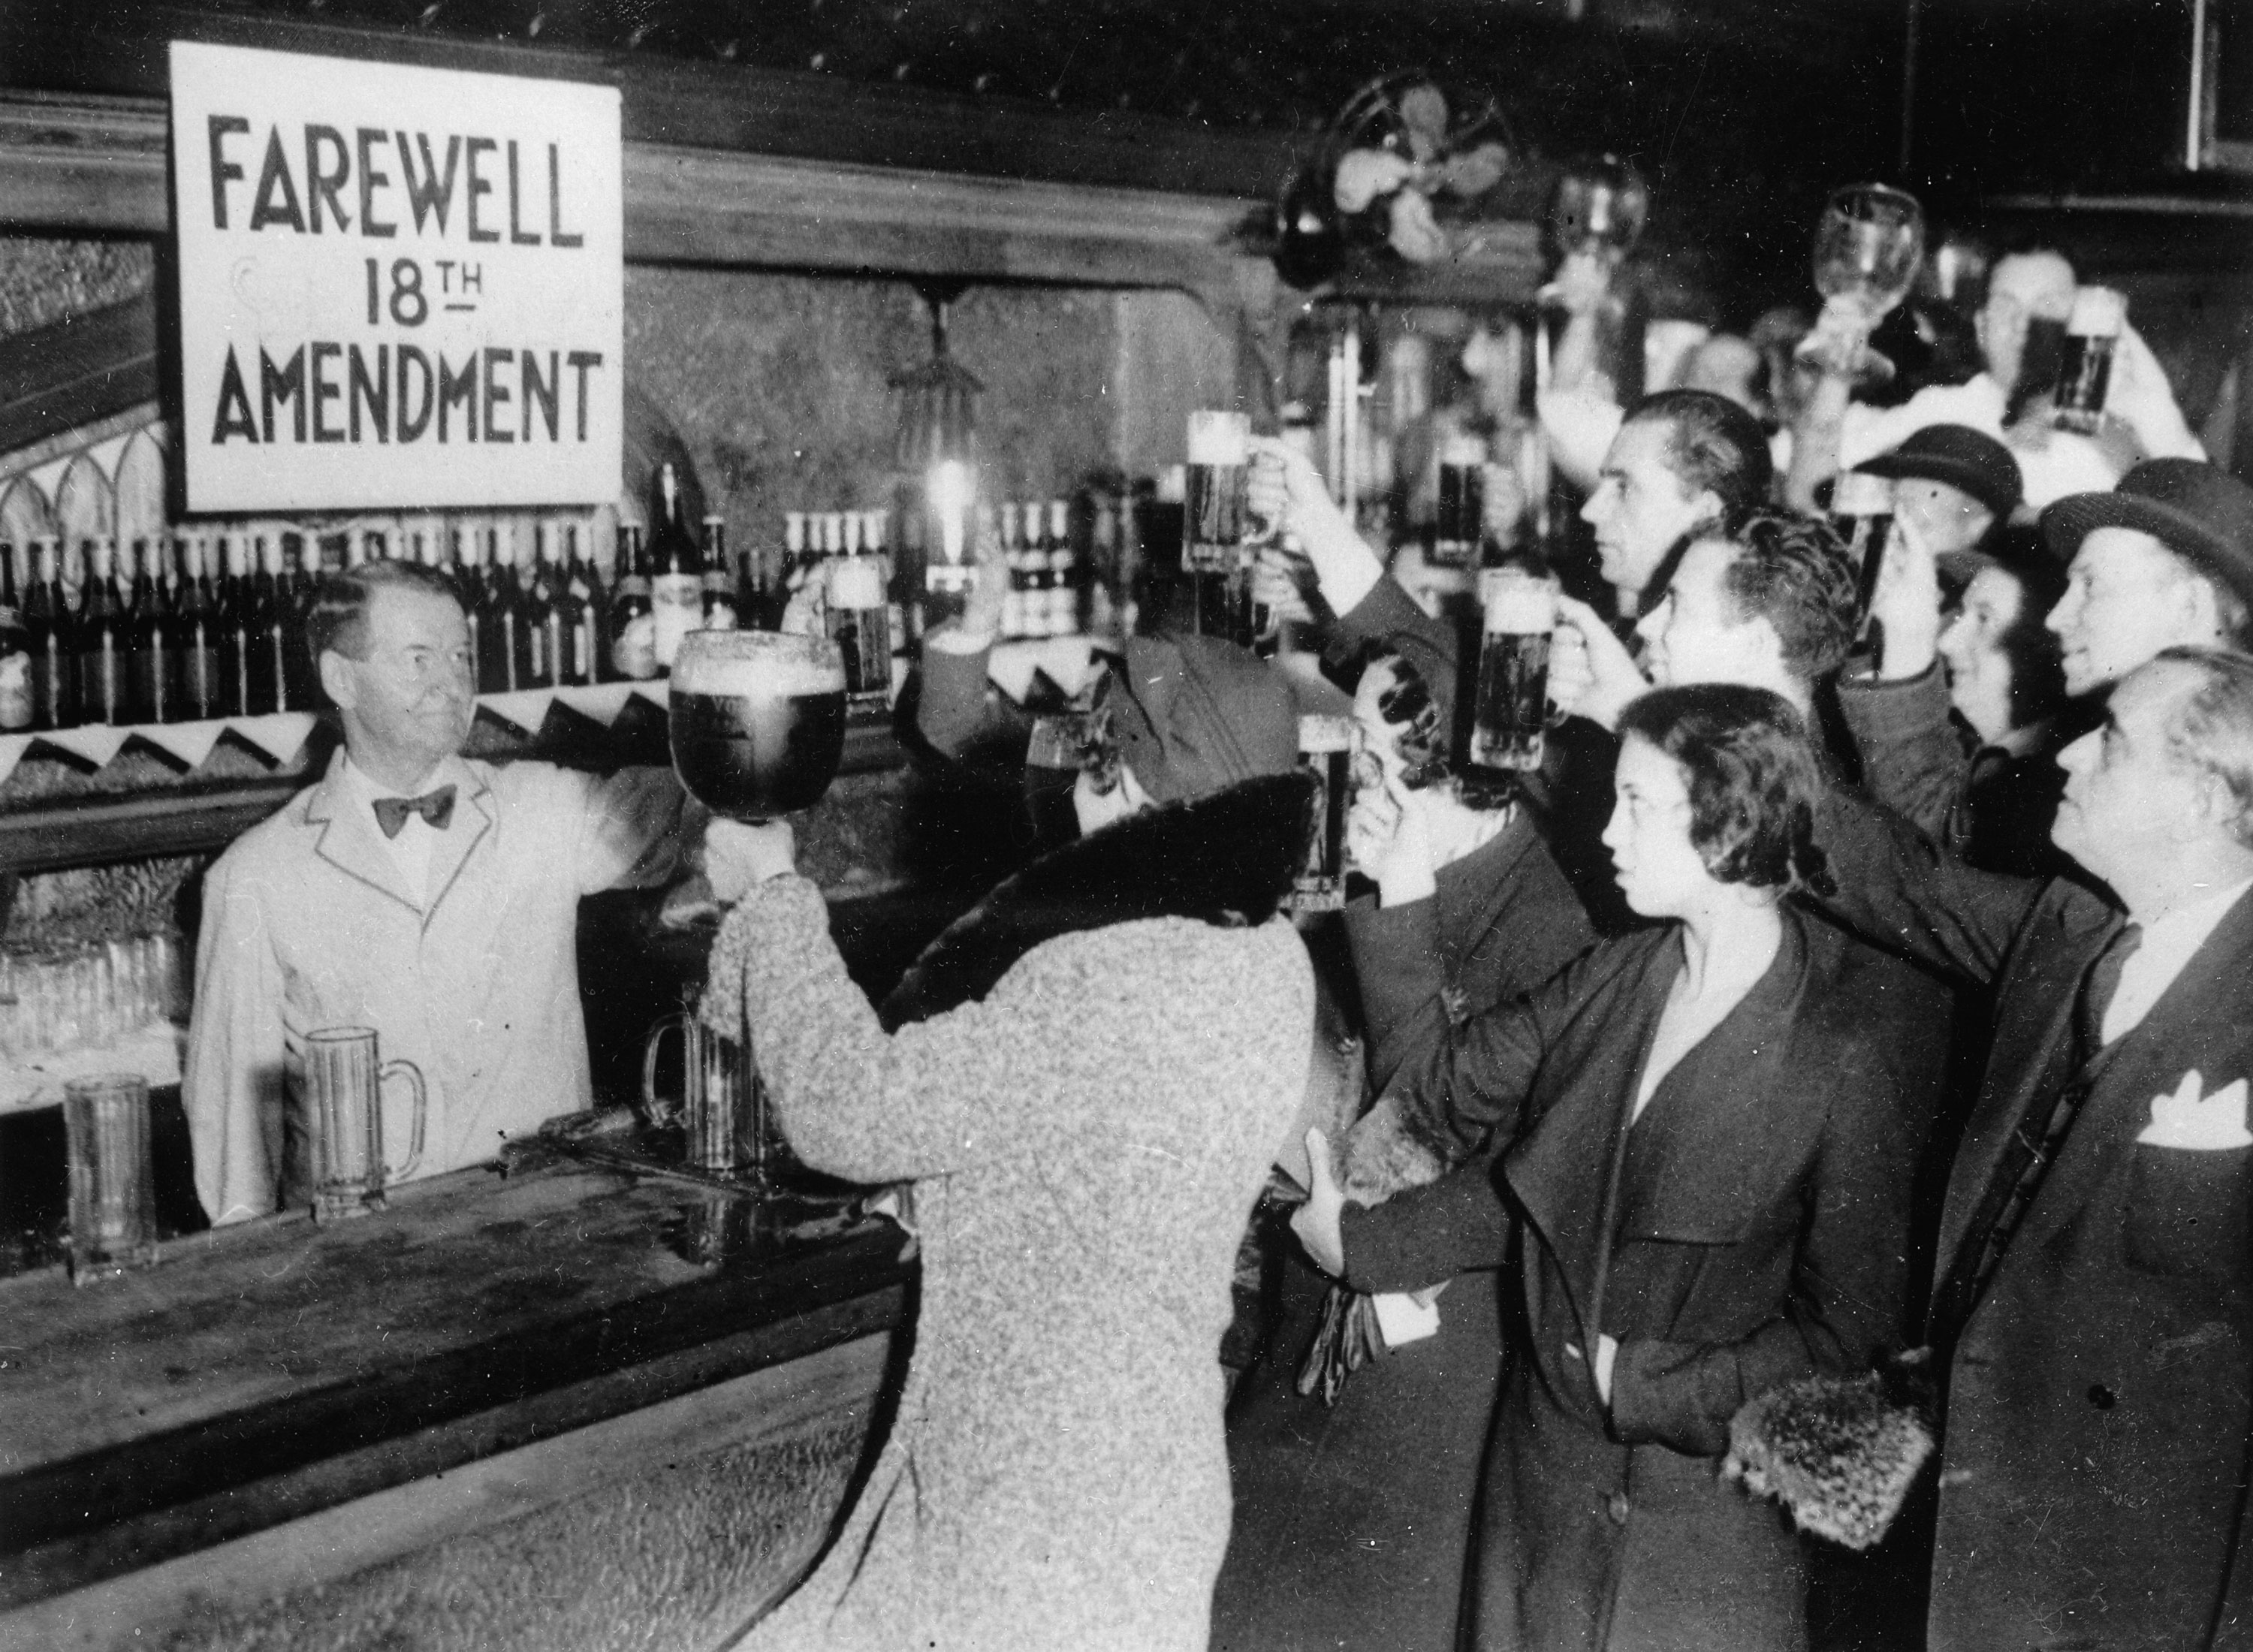 On this day in 1933, America ended prohibition